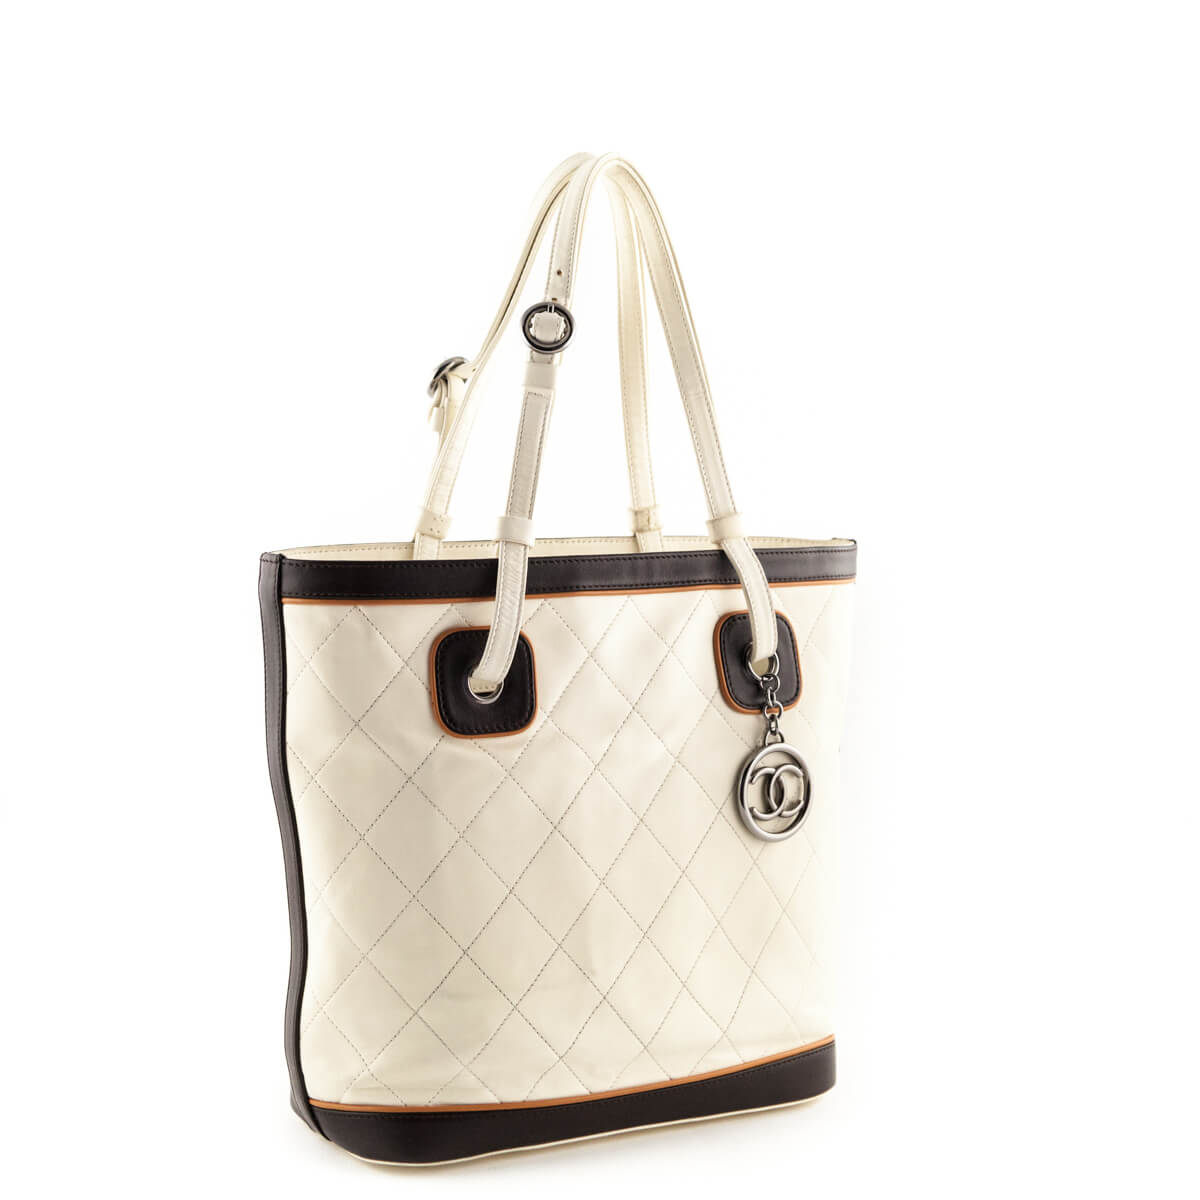 c1f1886f1827 ... Chanel Cream Quilted Top Handle Tote - LOVE that BAG - Preowned  Authentic Designer Handbags ...